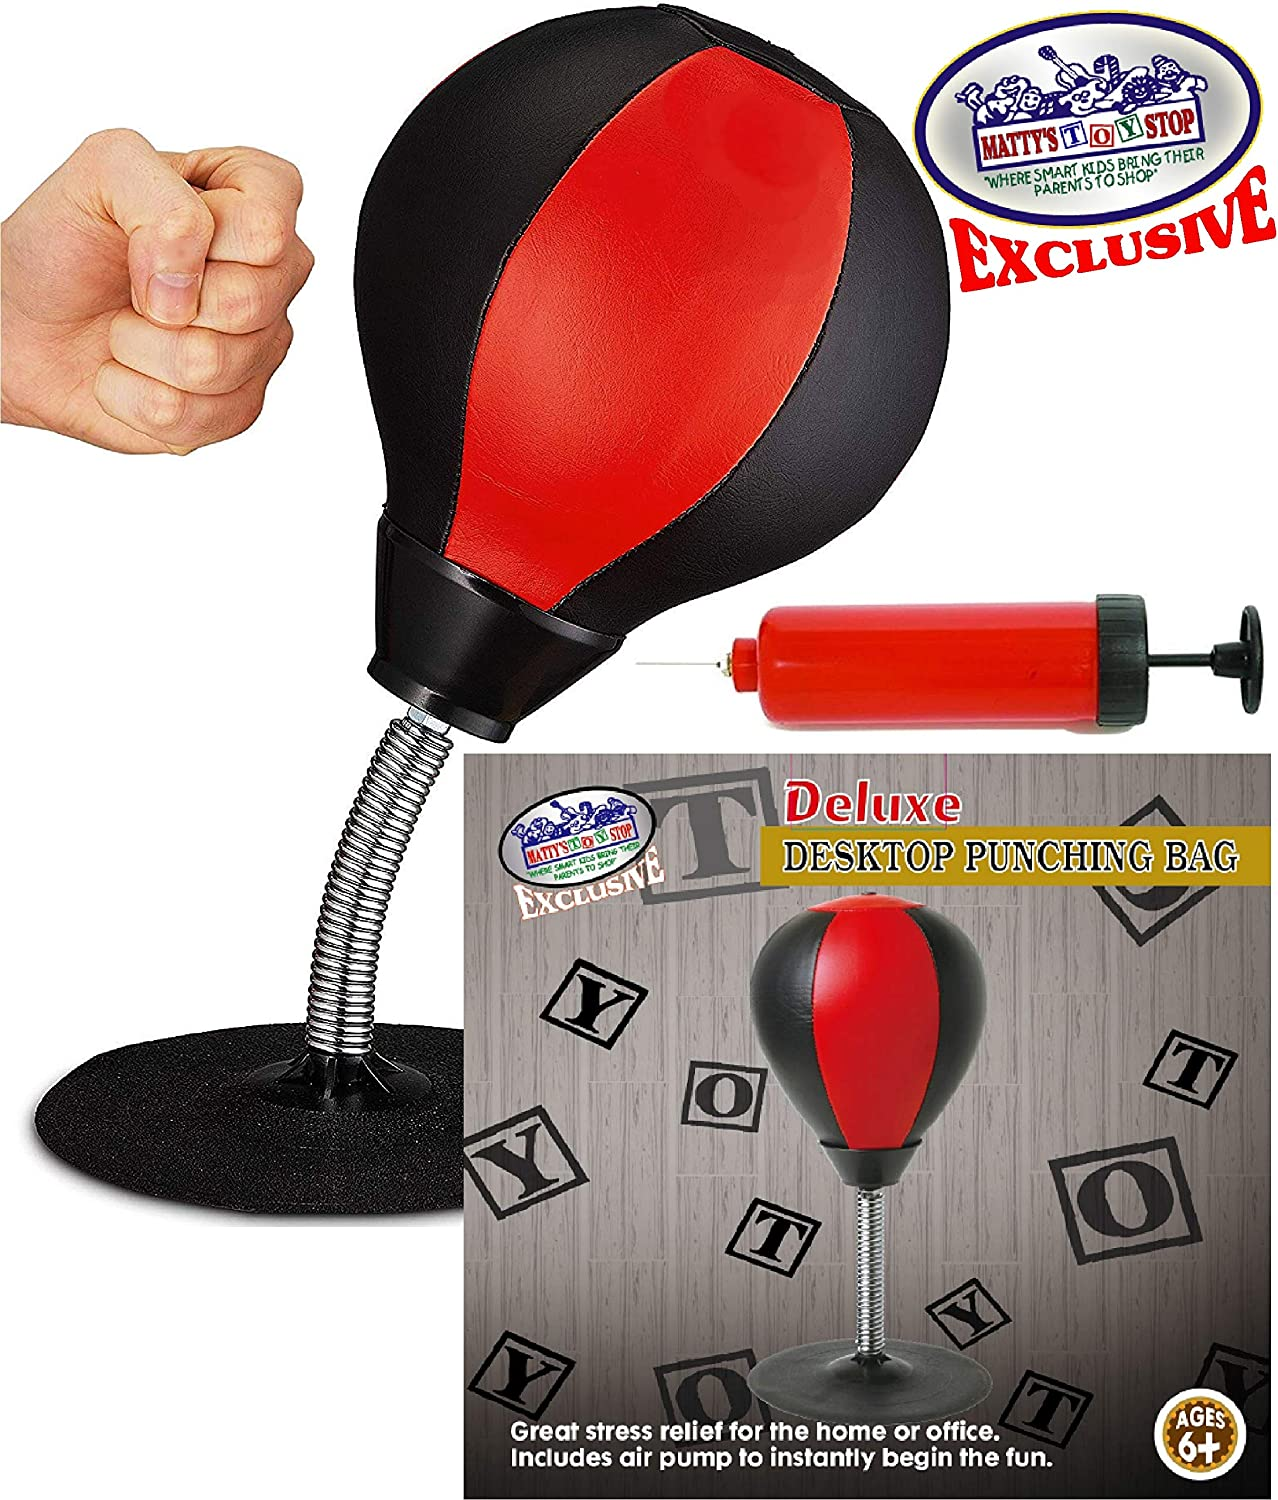 Matty's Toy Stop Desktop Punching Bag (Ball) with Air Pump, for Home or Office Stress Relief